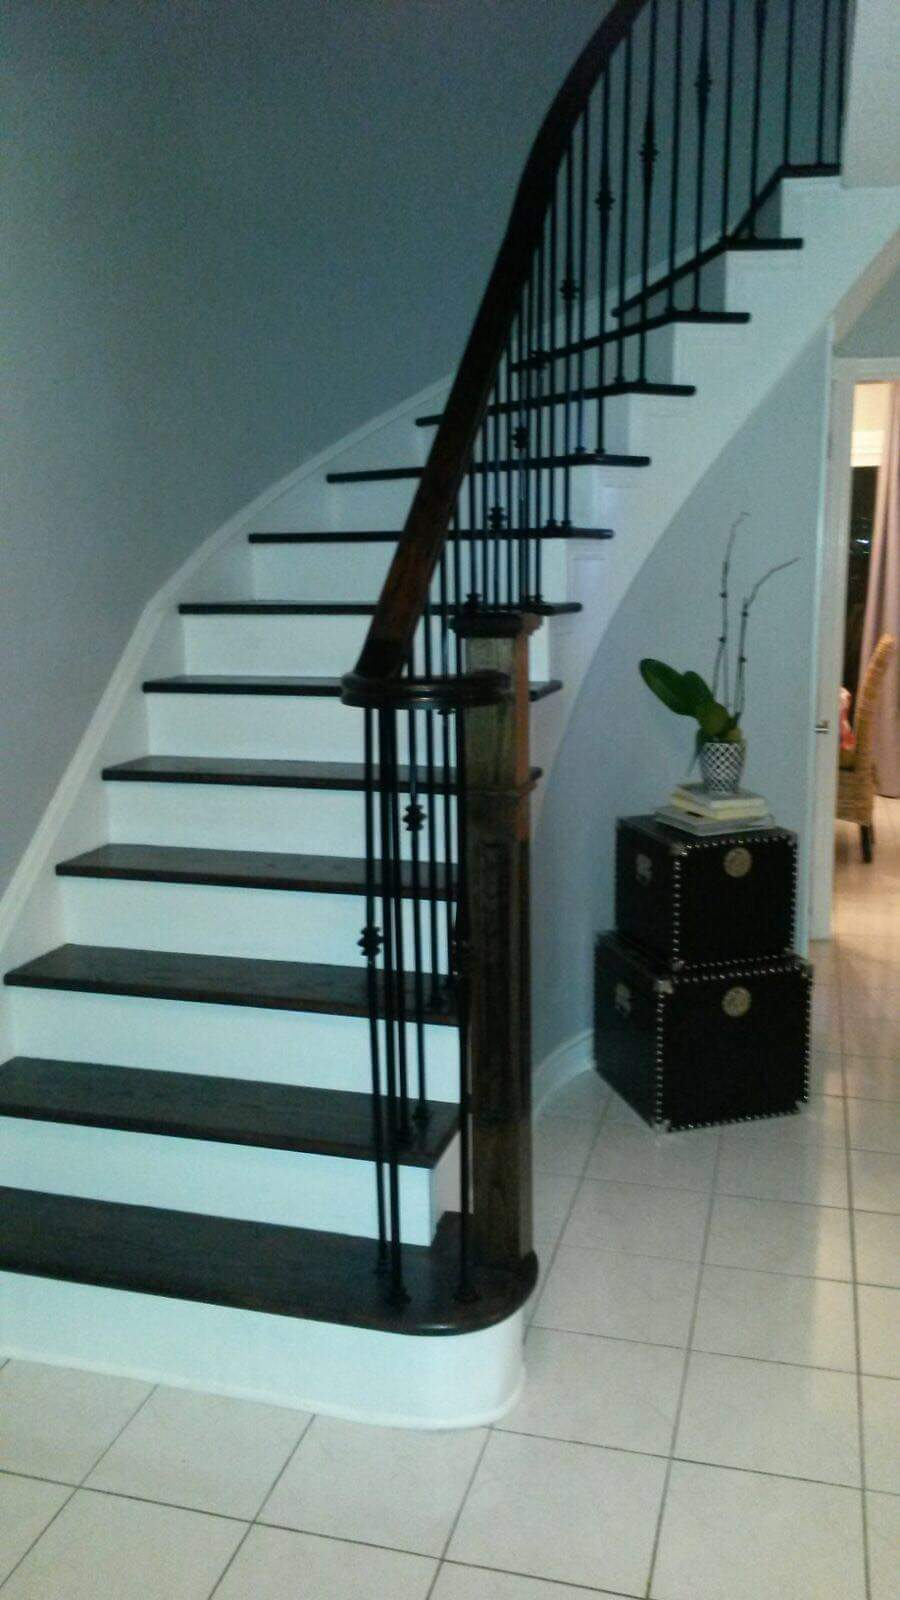 IMG_7034 - GTA Hardwood Installation, Refinishing, RepairGTA ...